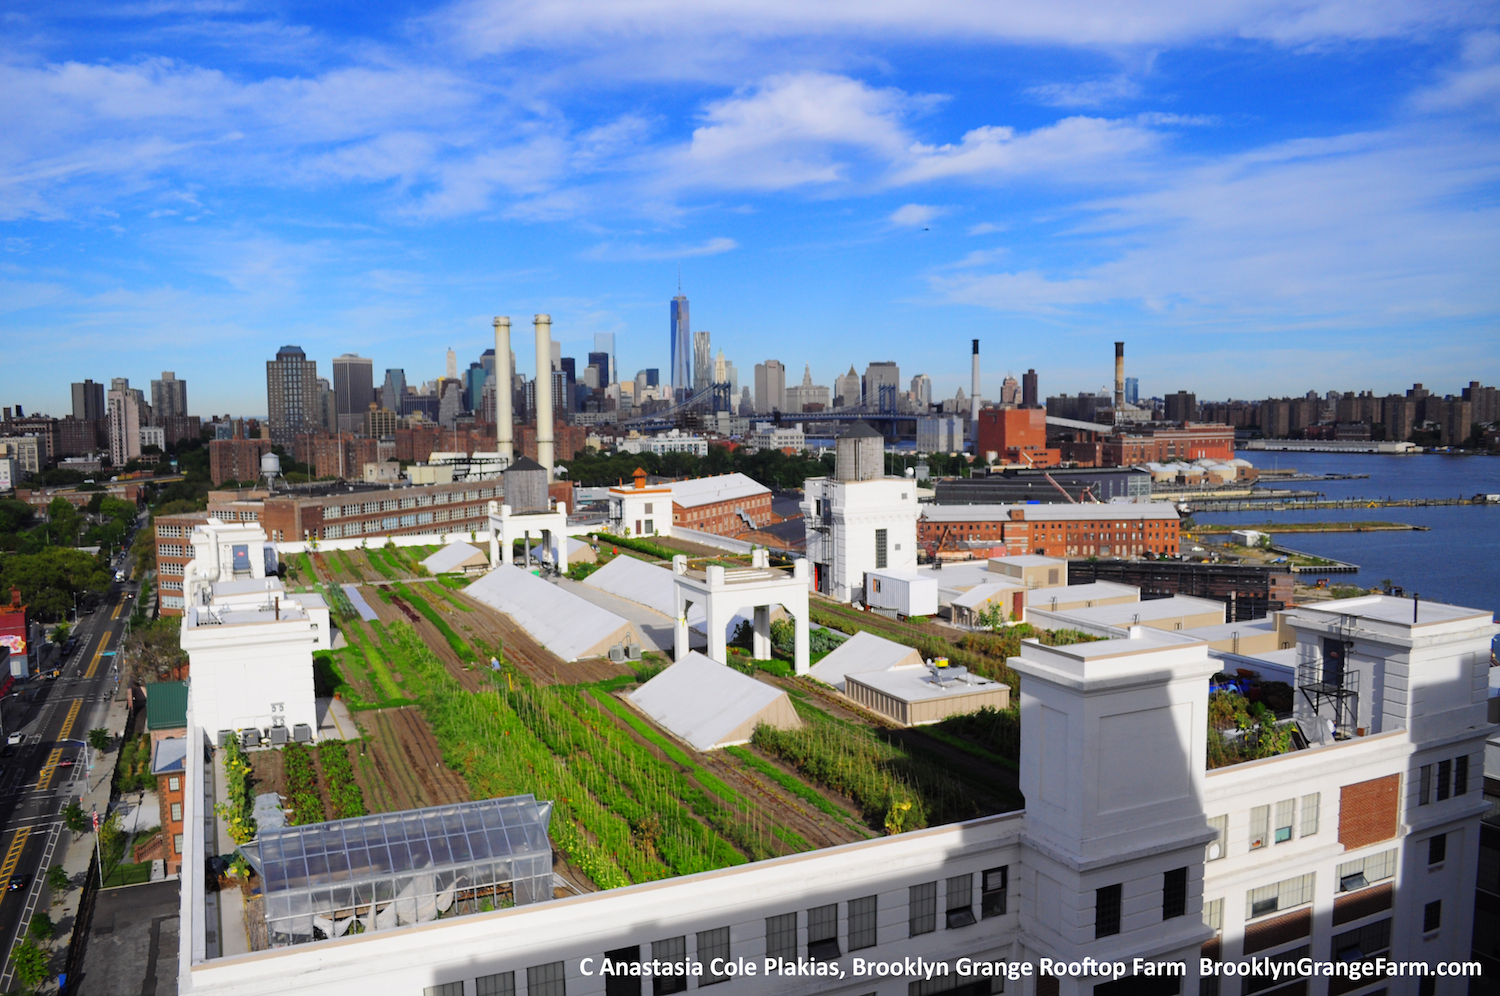 One of  Brooklyn Grange 's rooftop farms in Brooklyn (not used in this study).